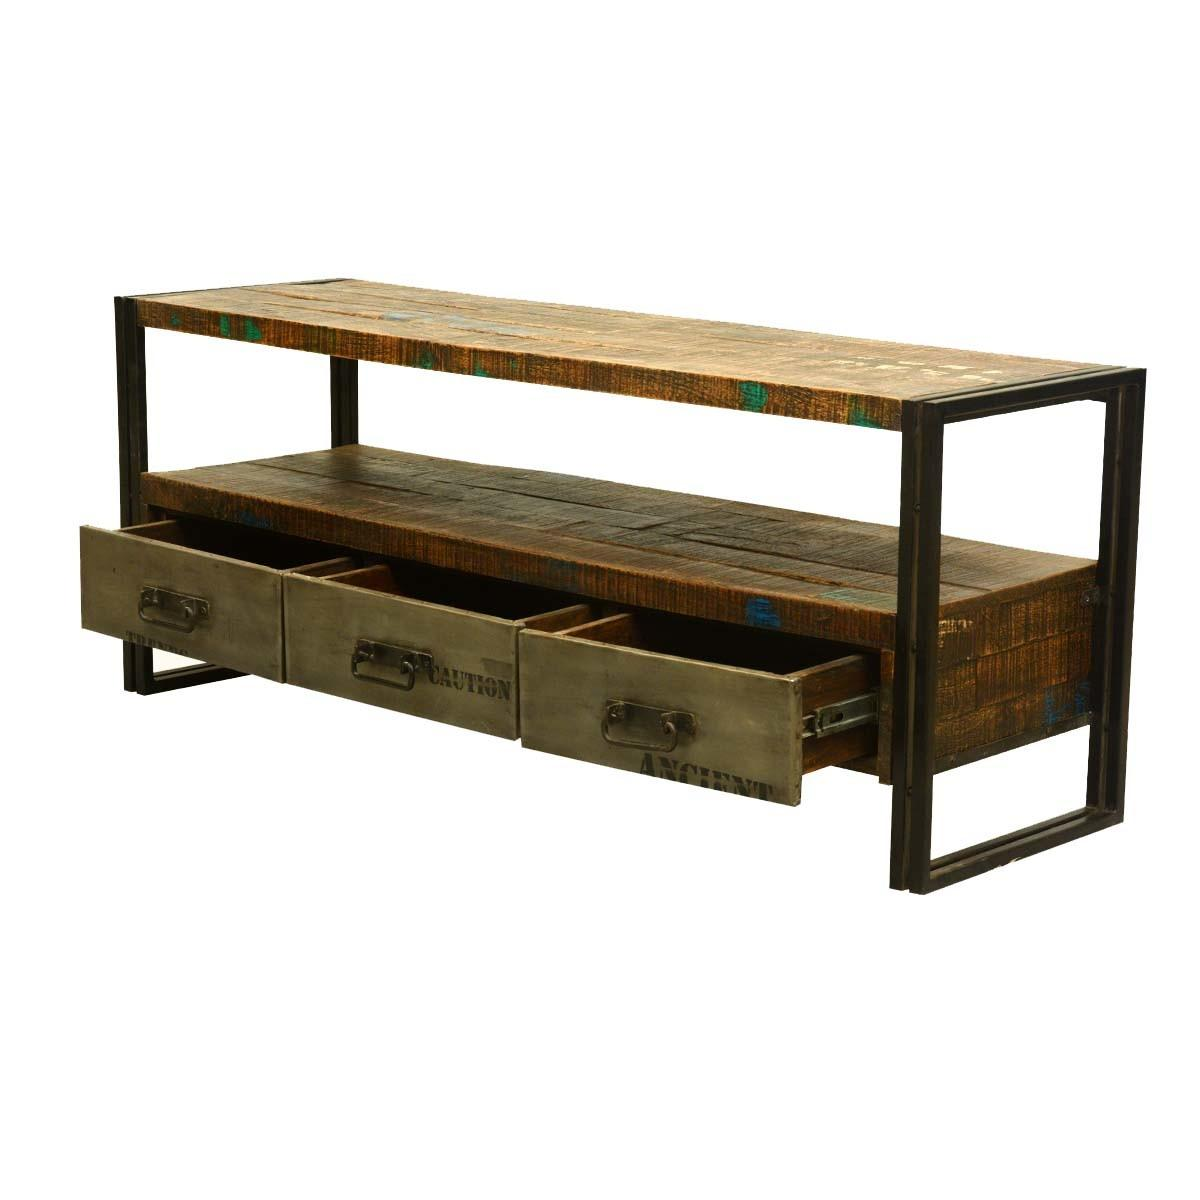 Modern Rustic Reclaimed Wood Iron Media Console